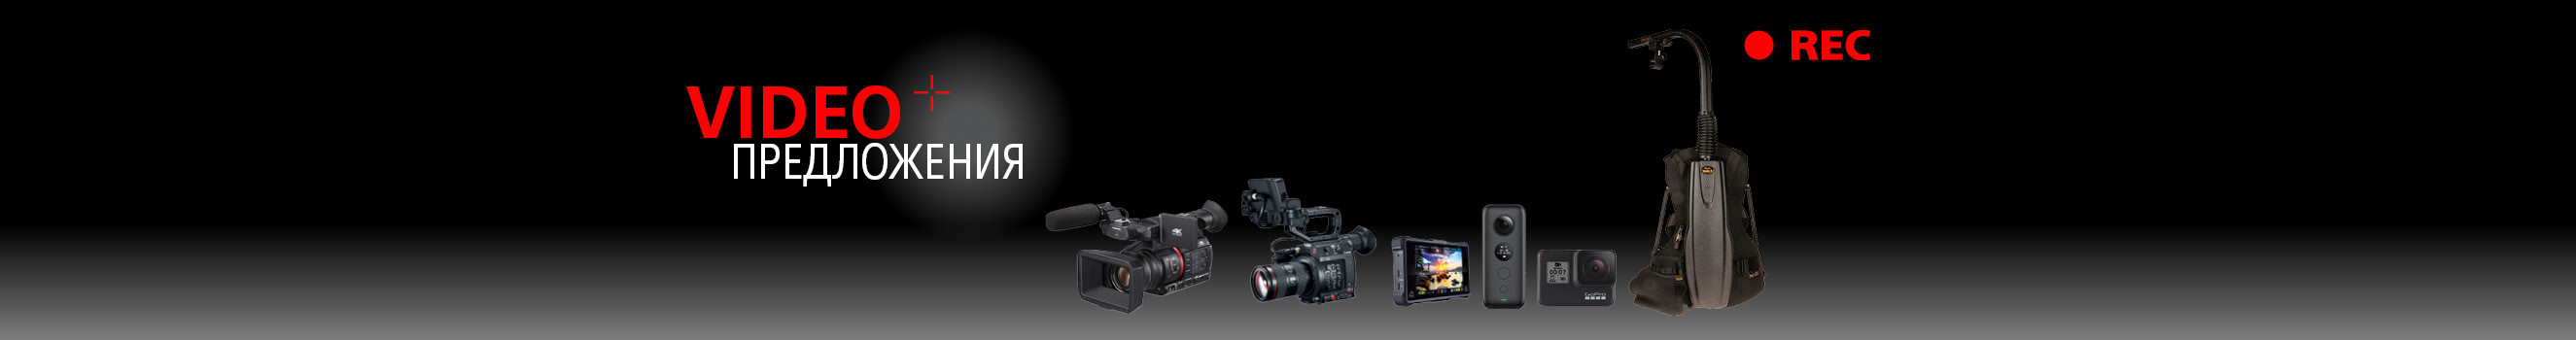 Camcorders, Recording Lenses, Video and Audio Recorders, Stabilization Systems, Lighting and Accessories at Promotional Prices